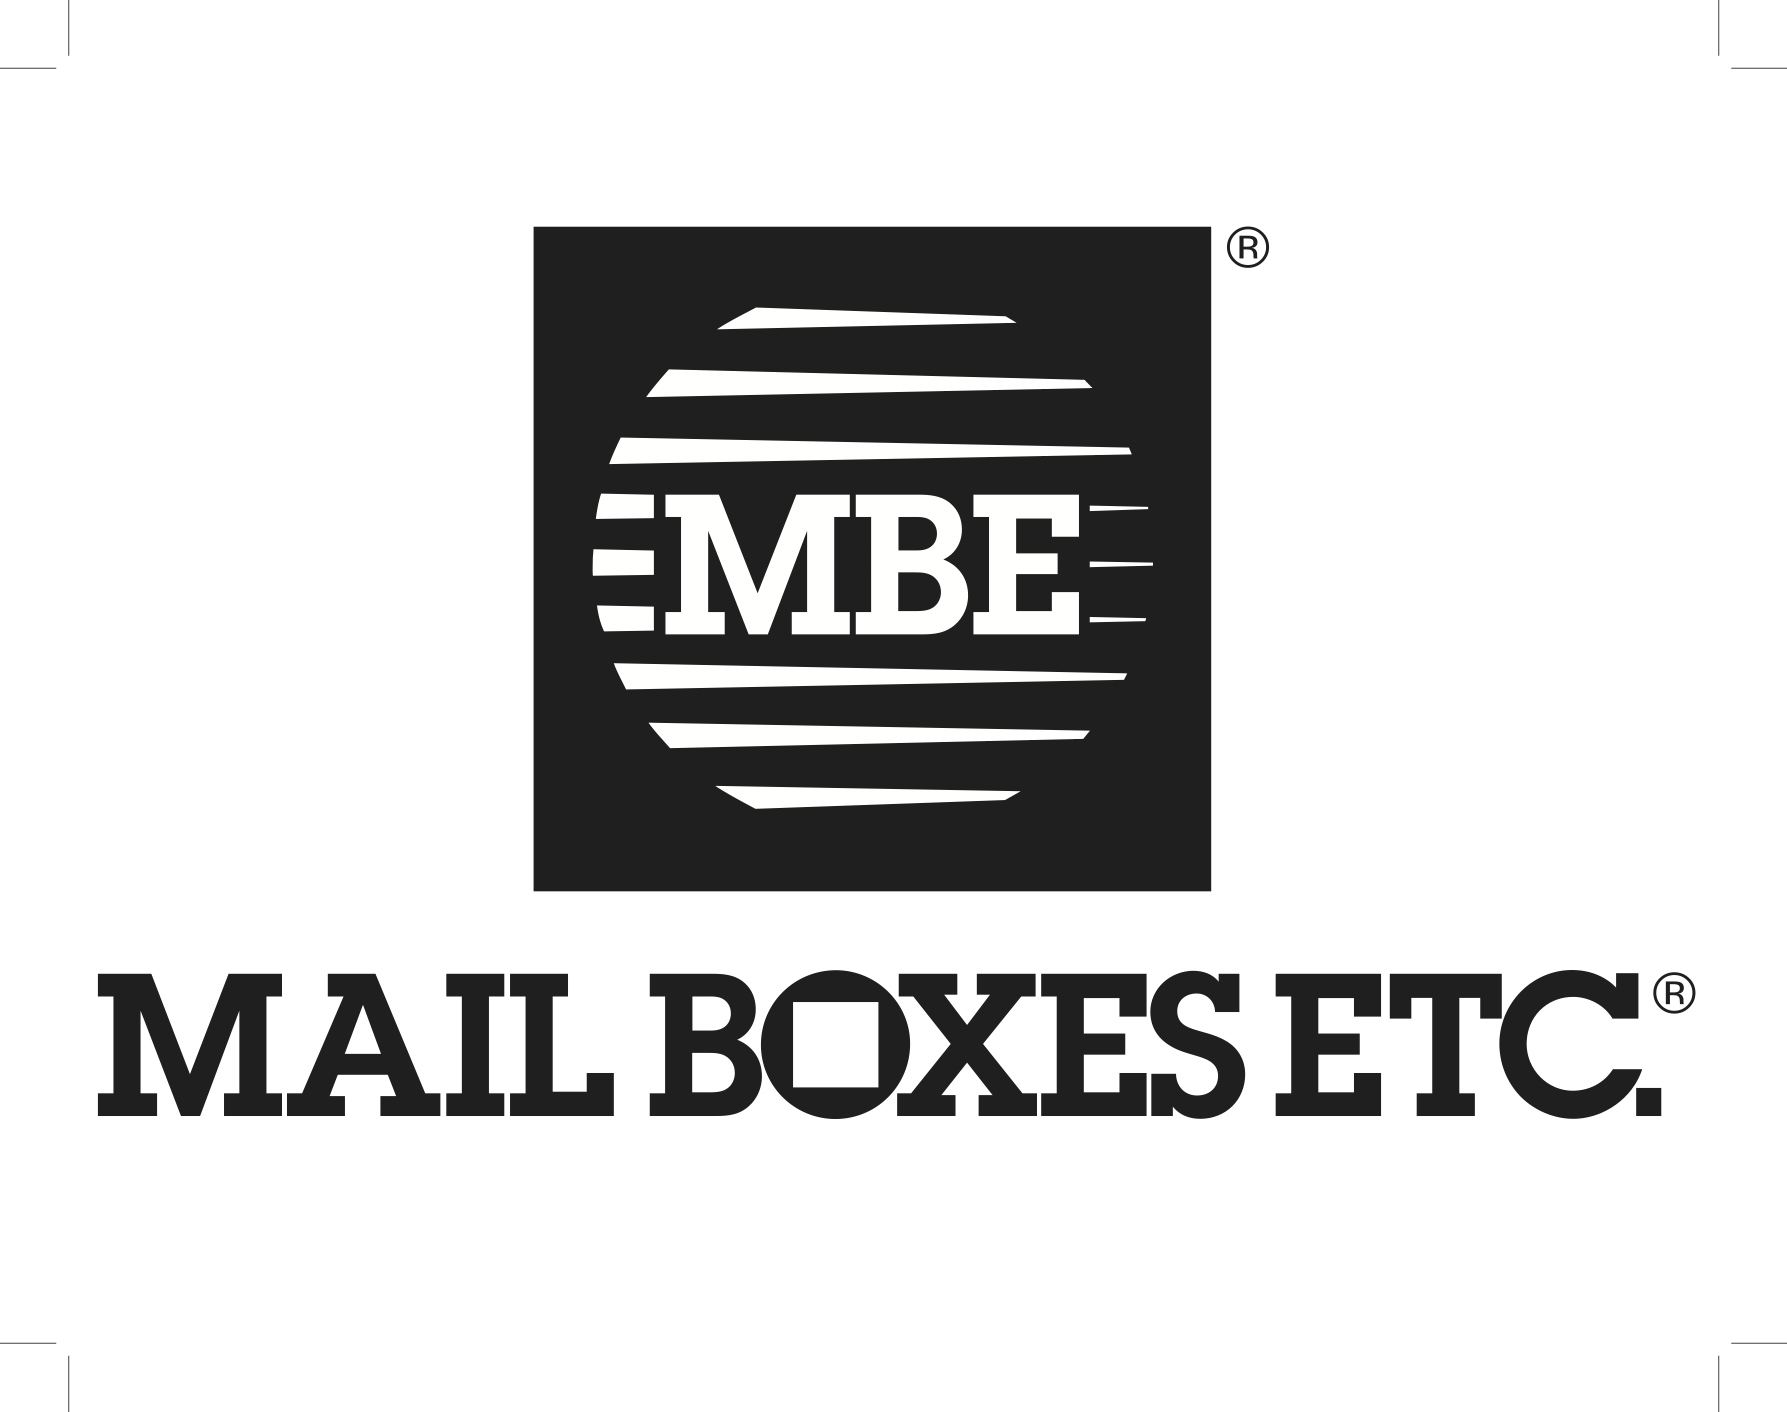 MBE Logo Vertica (Insert into Publisher) High Resolution [Converted].png